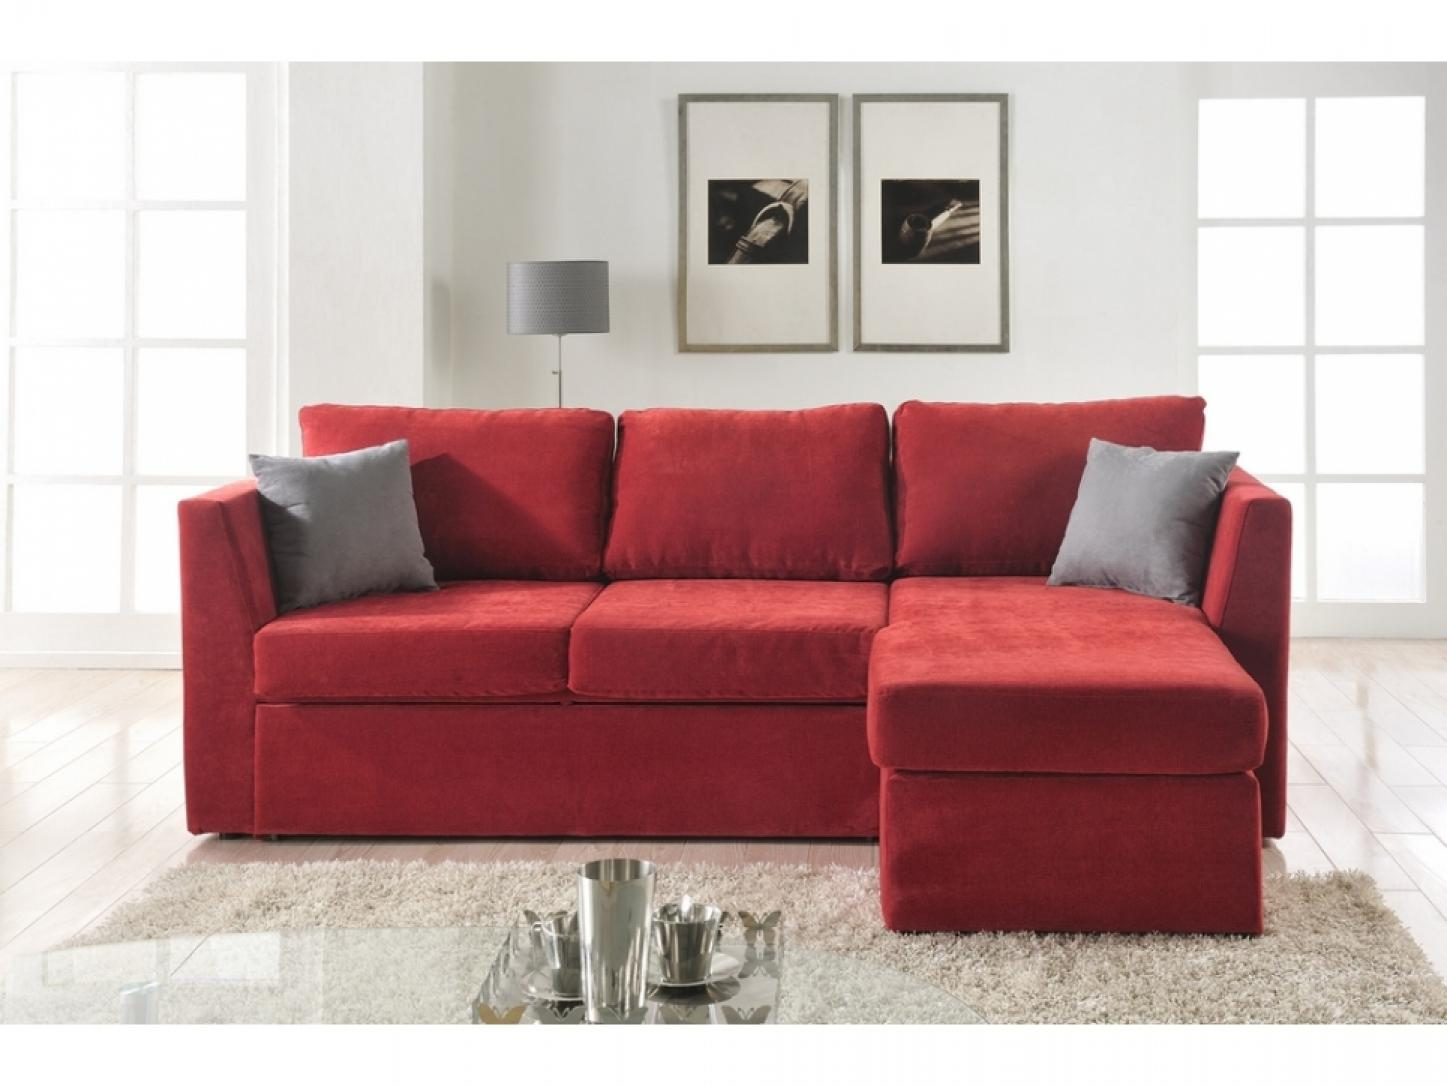 Photos canap d 39 angle convertible tissu rouge - Canape convertible rouge ...